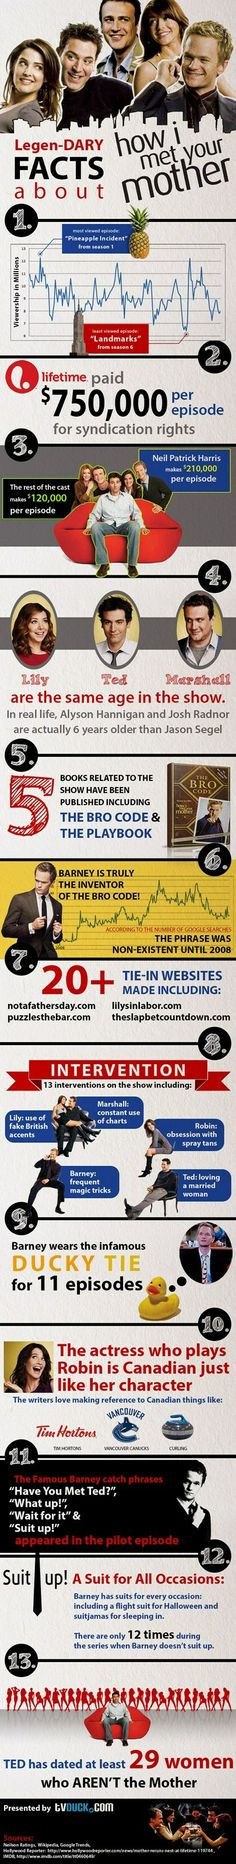 Legen-DARY Facts About How I Met Your Mother. Awesome!